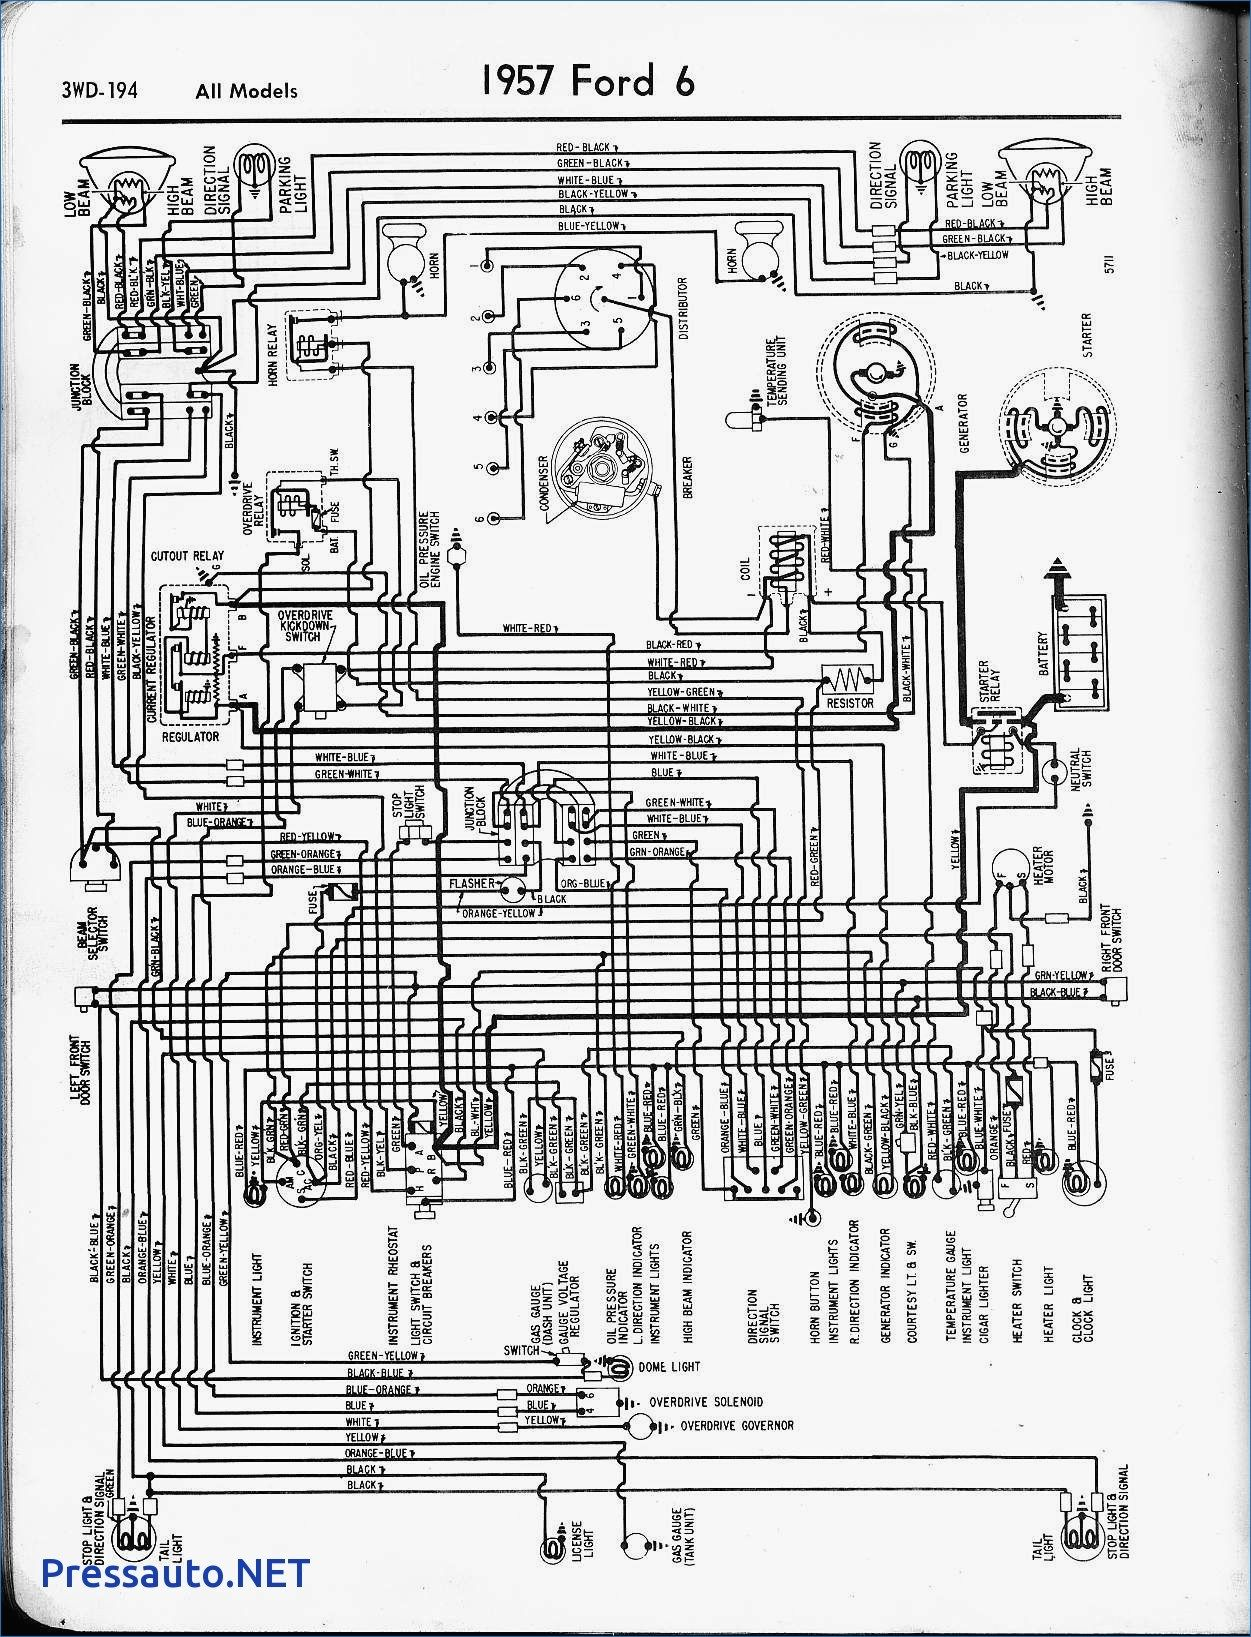 Peugeot 307 Central Locking Wiring Diagram